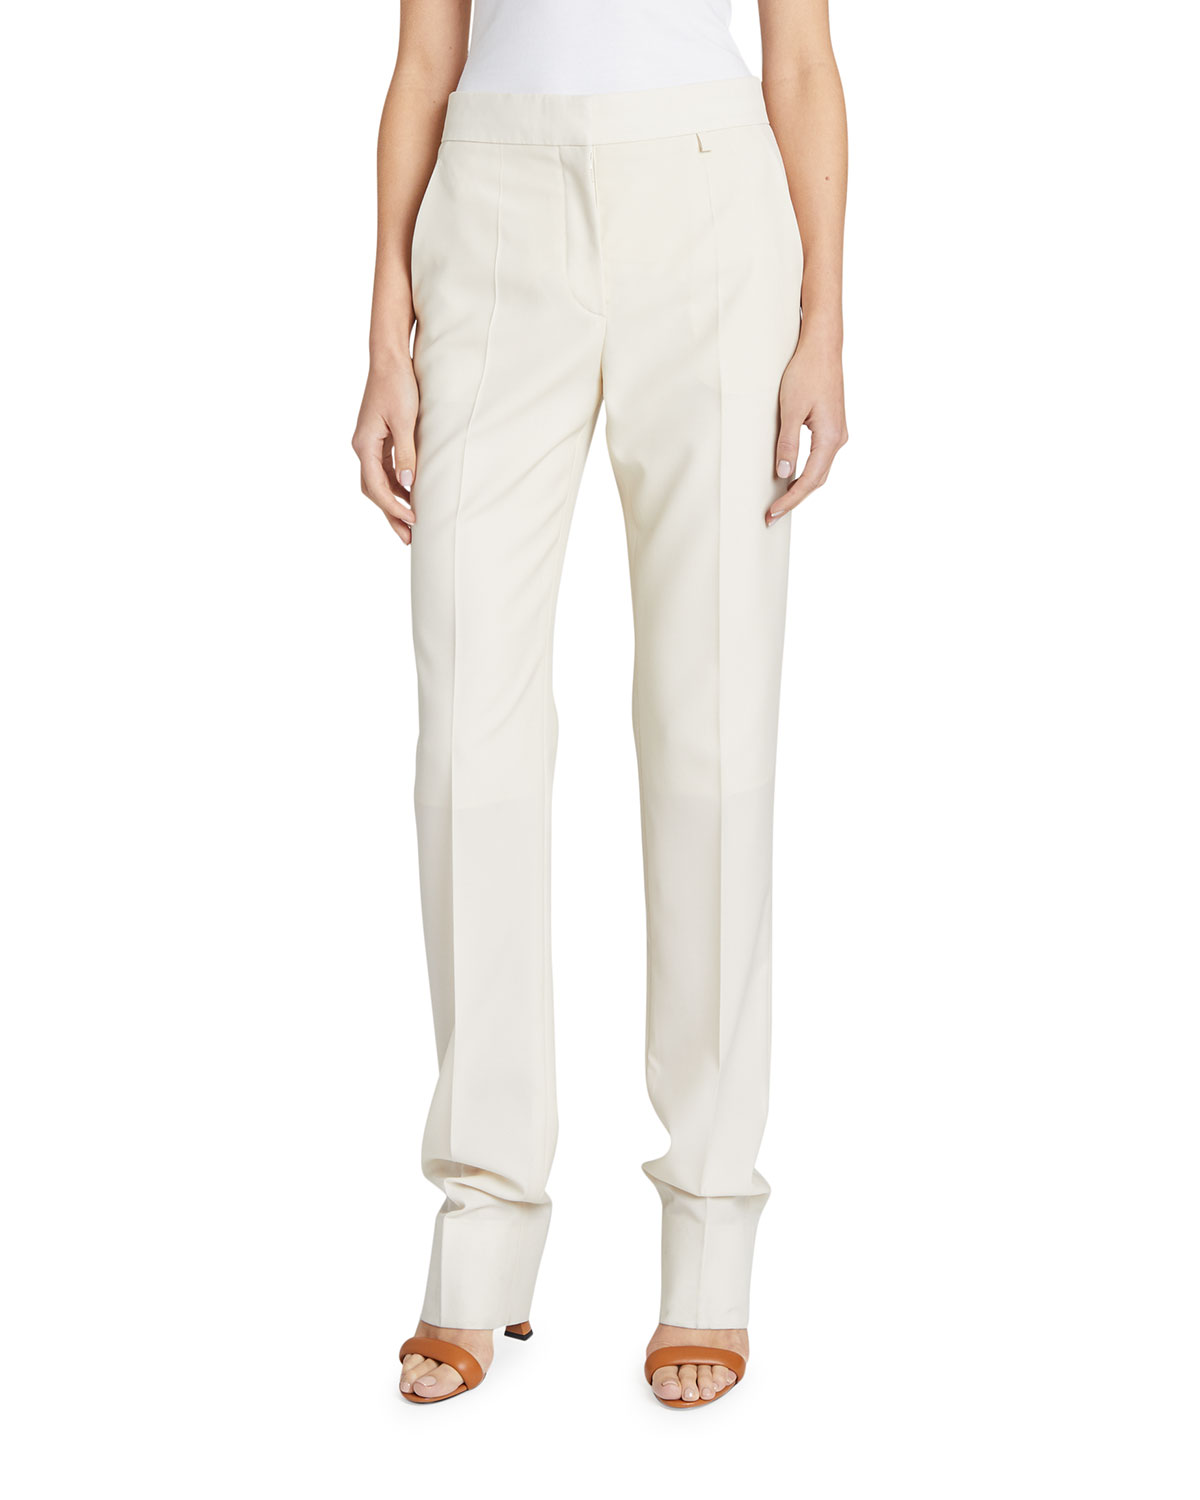 Givenchy Wools 18 GG HIGH-WAIST TAPERED TROUSERS